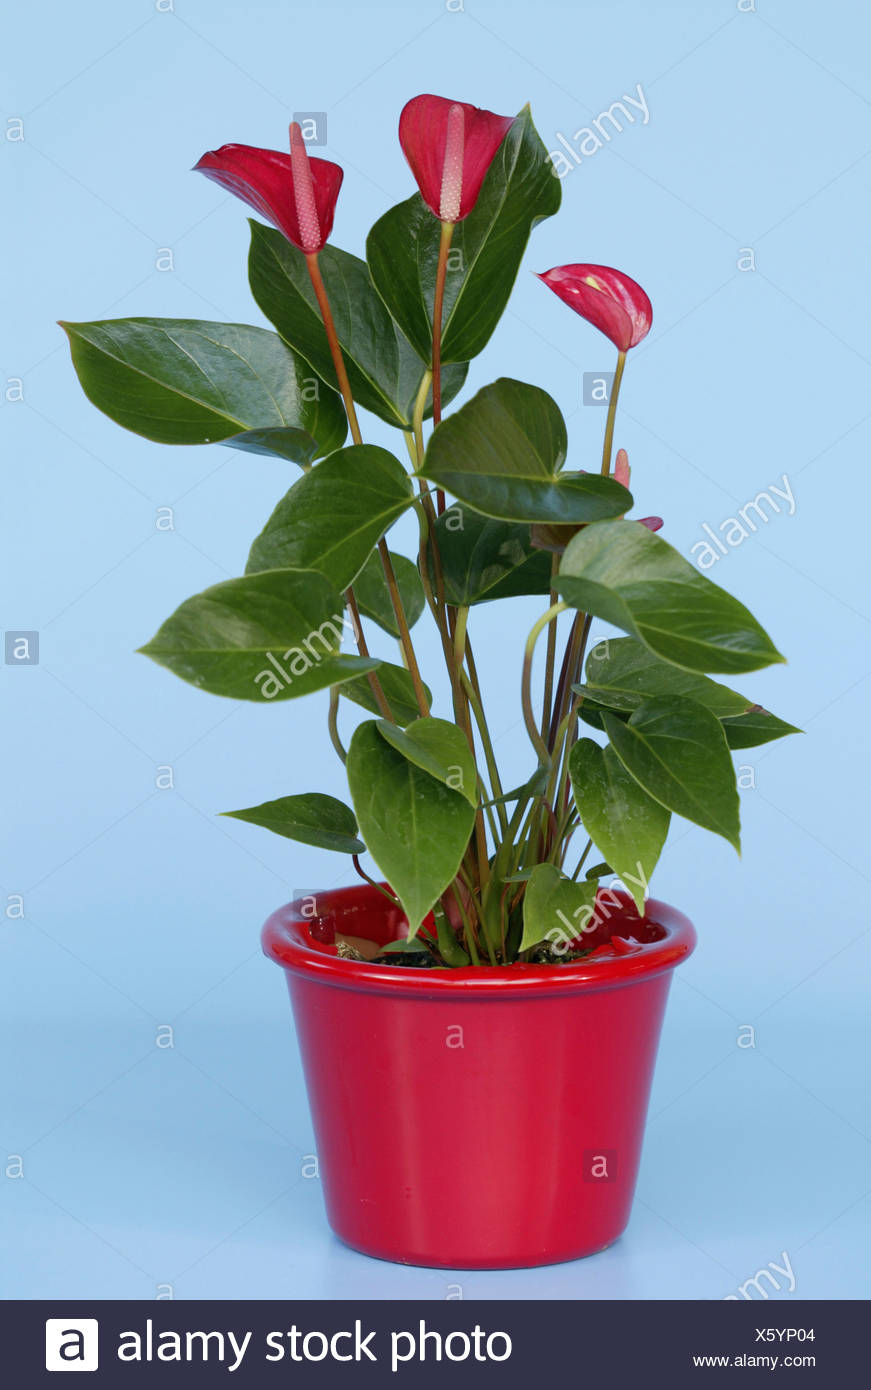 Flamingo lily genus anthurium plant in pot stock photo flamingo lily genus anthurium plant in pot izmirmasajfo